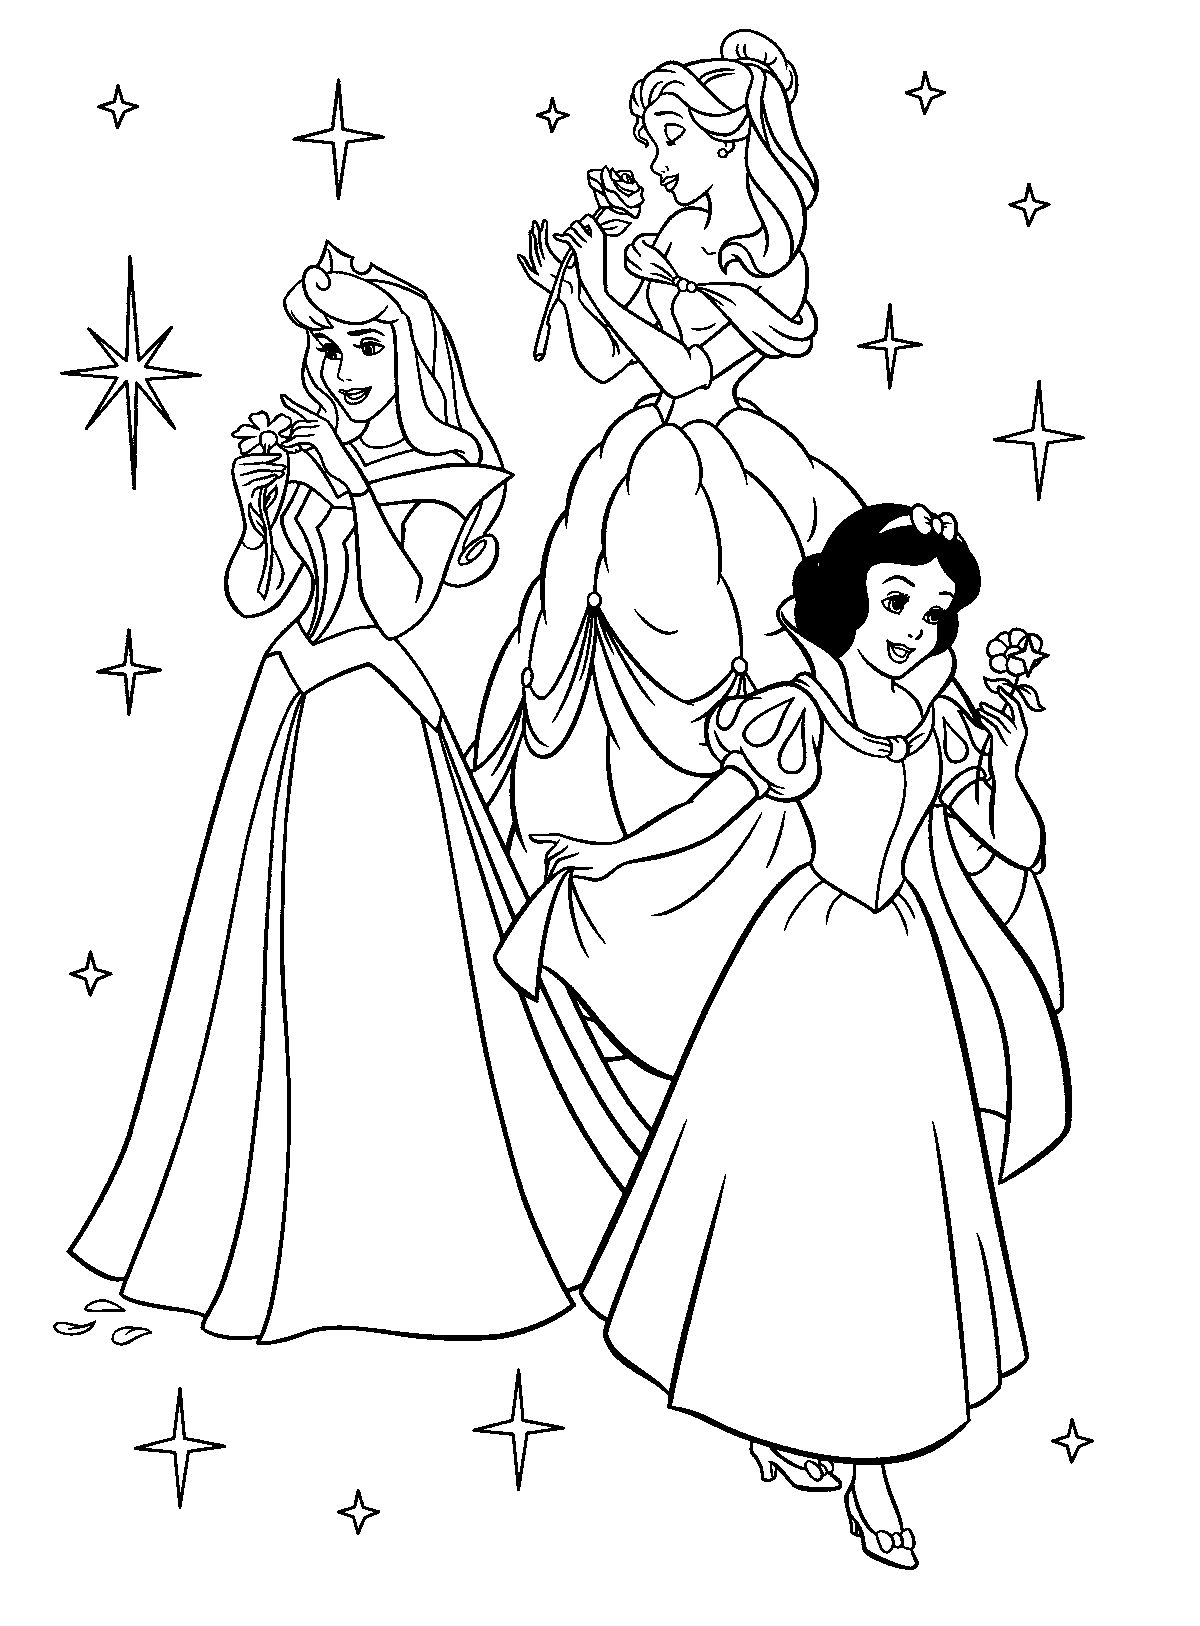 Disney Princess Free Coloring Pages For Kids